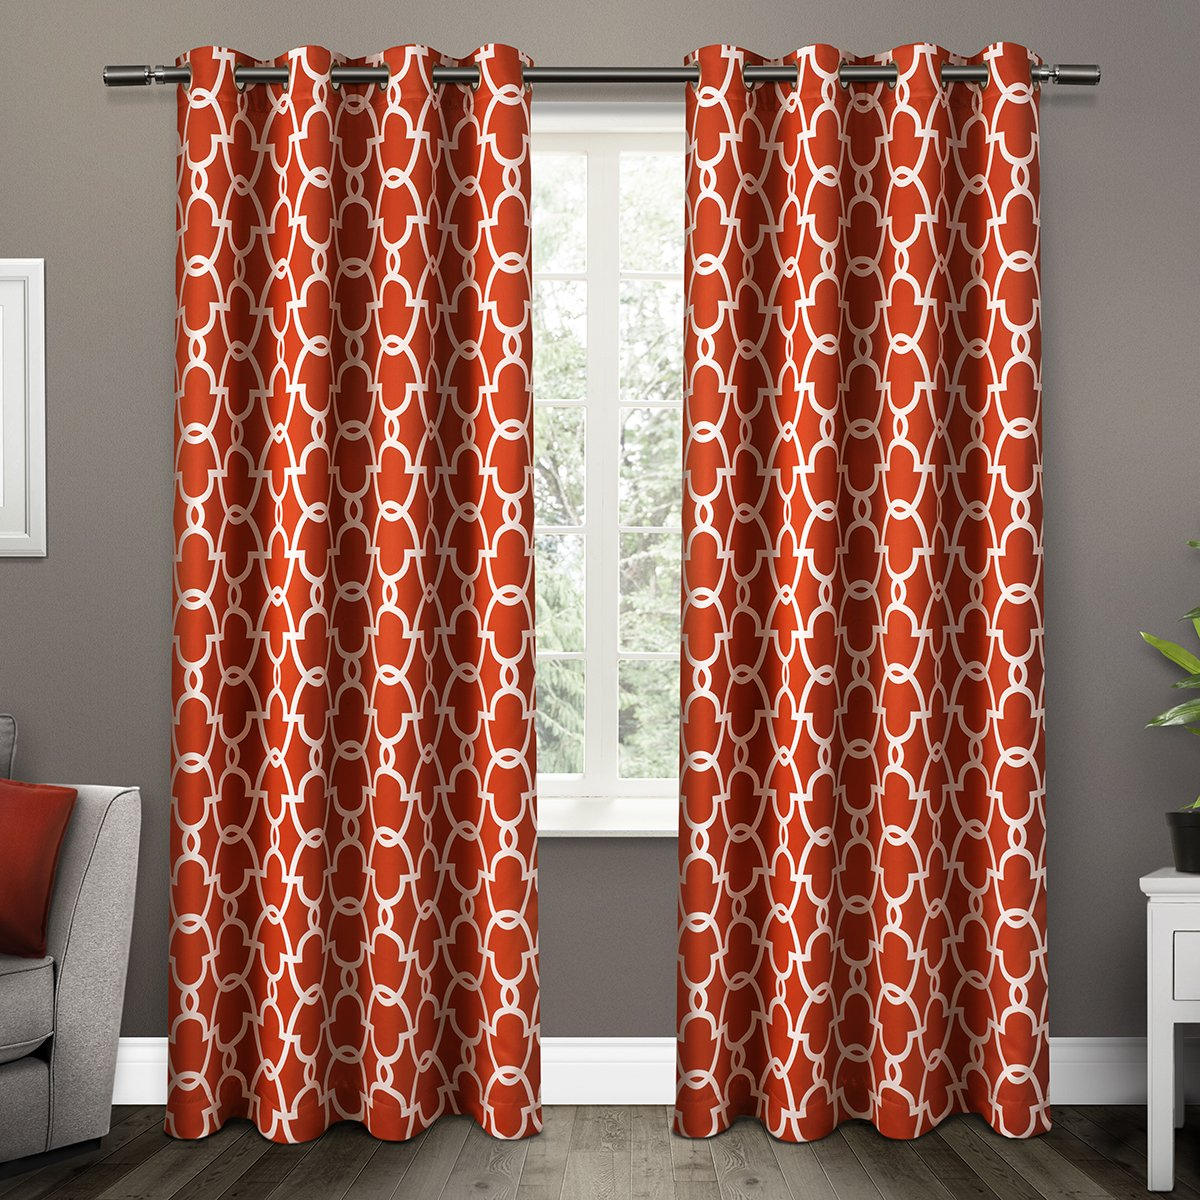 amazoncom exclusive home curtains gates sateen blackout thermal grommet top window curtain panel pair mecca orange 52x84 home u0026 kitchen